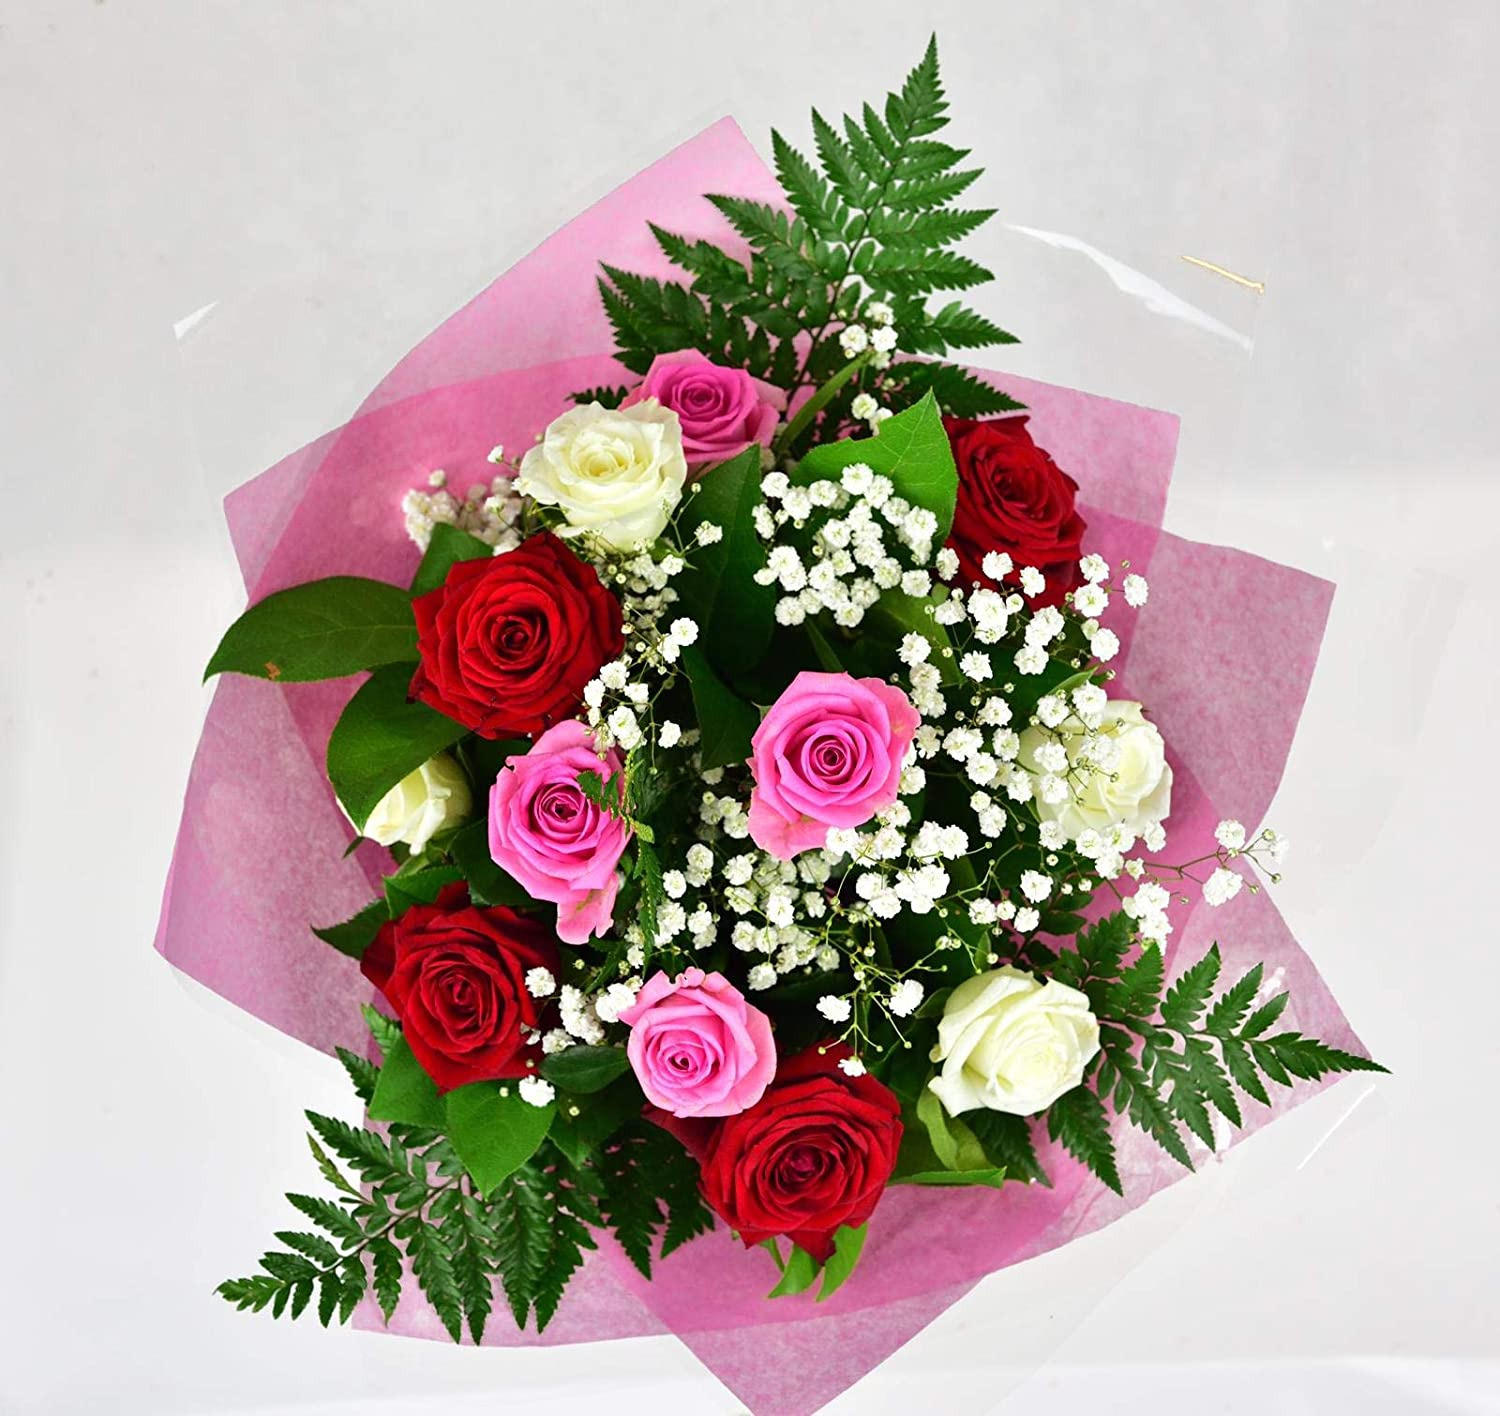 Heaven Bouquet Fresh Flowers Free Uk Delivery Heaven Bouquet Is A Beautiful Bouquet For Any Occasion Birthday Thank You Congratulation Amazon Co Uk Garden Outdoors